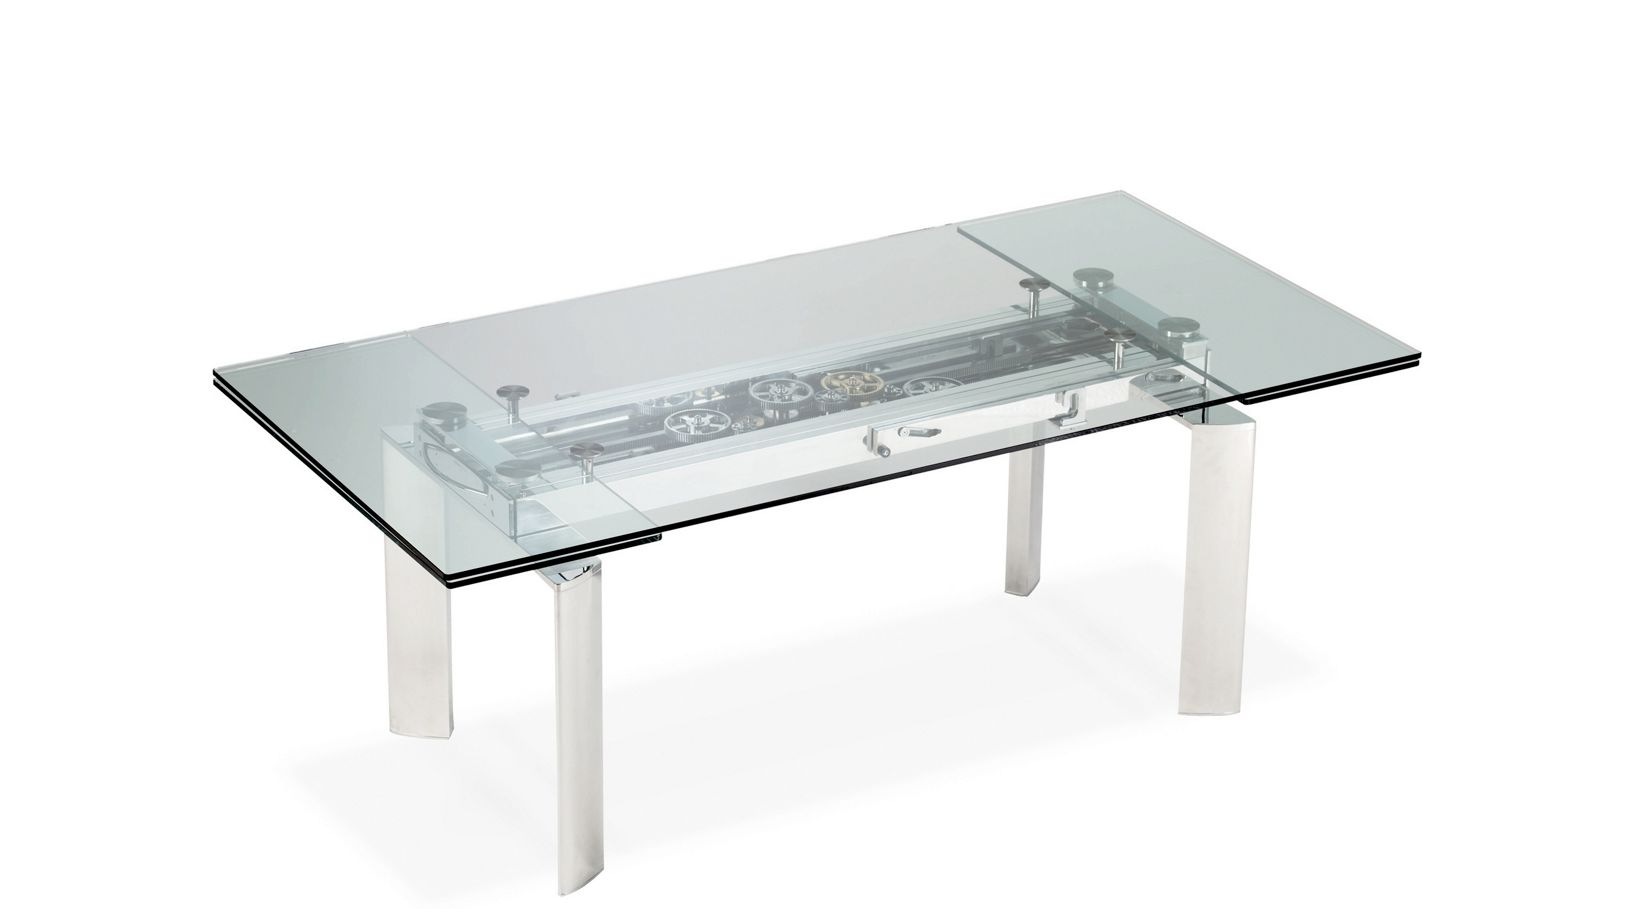 Table basse astrolab roche bobois - Table salle a manger design roche bobois ...